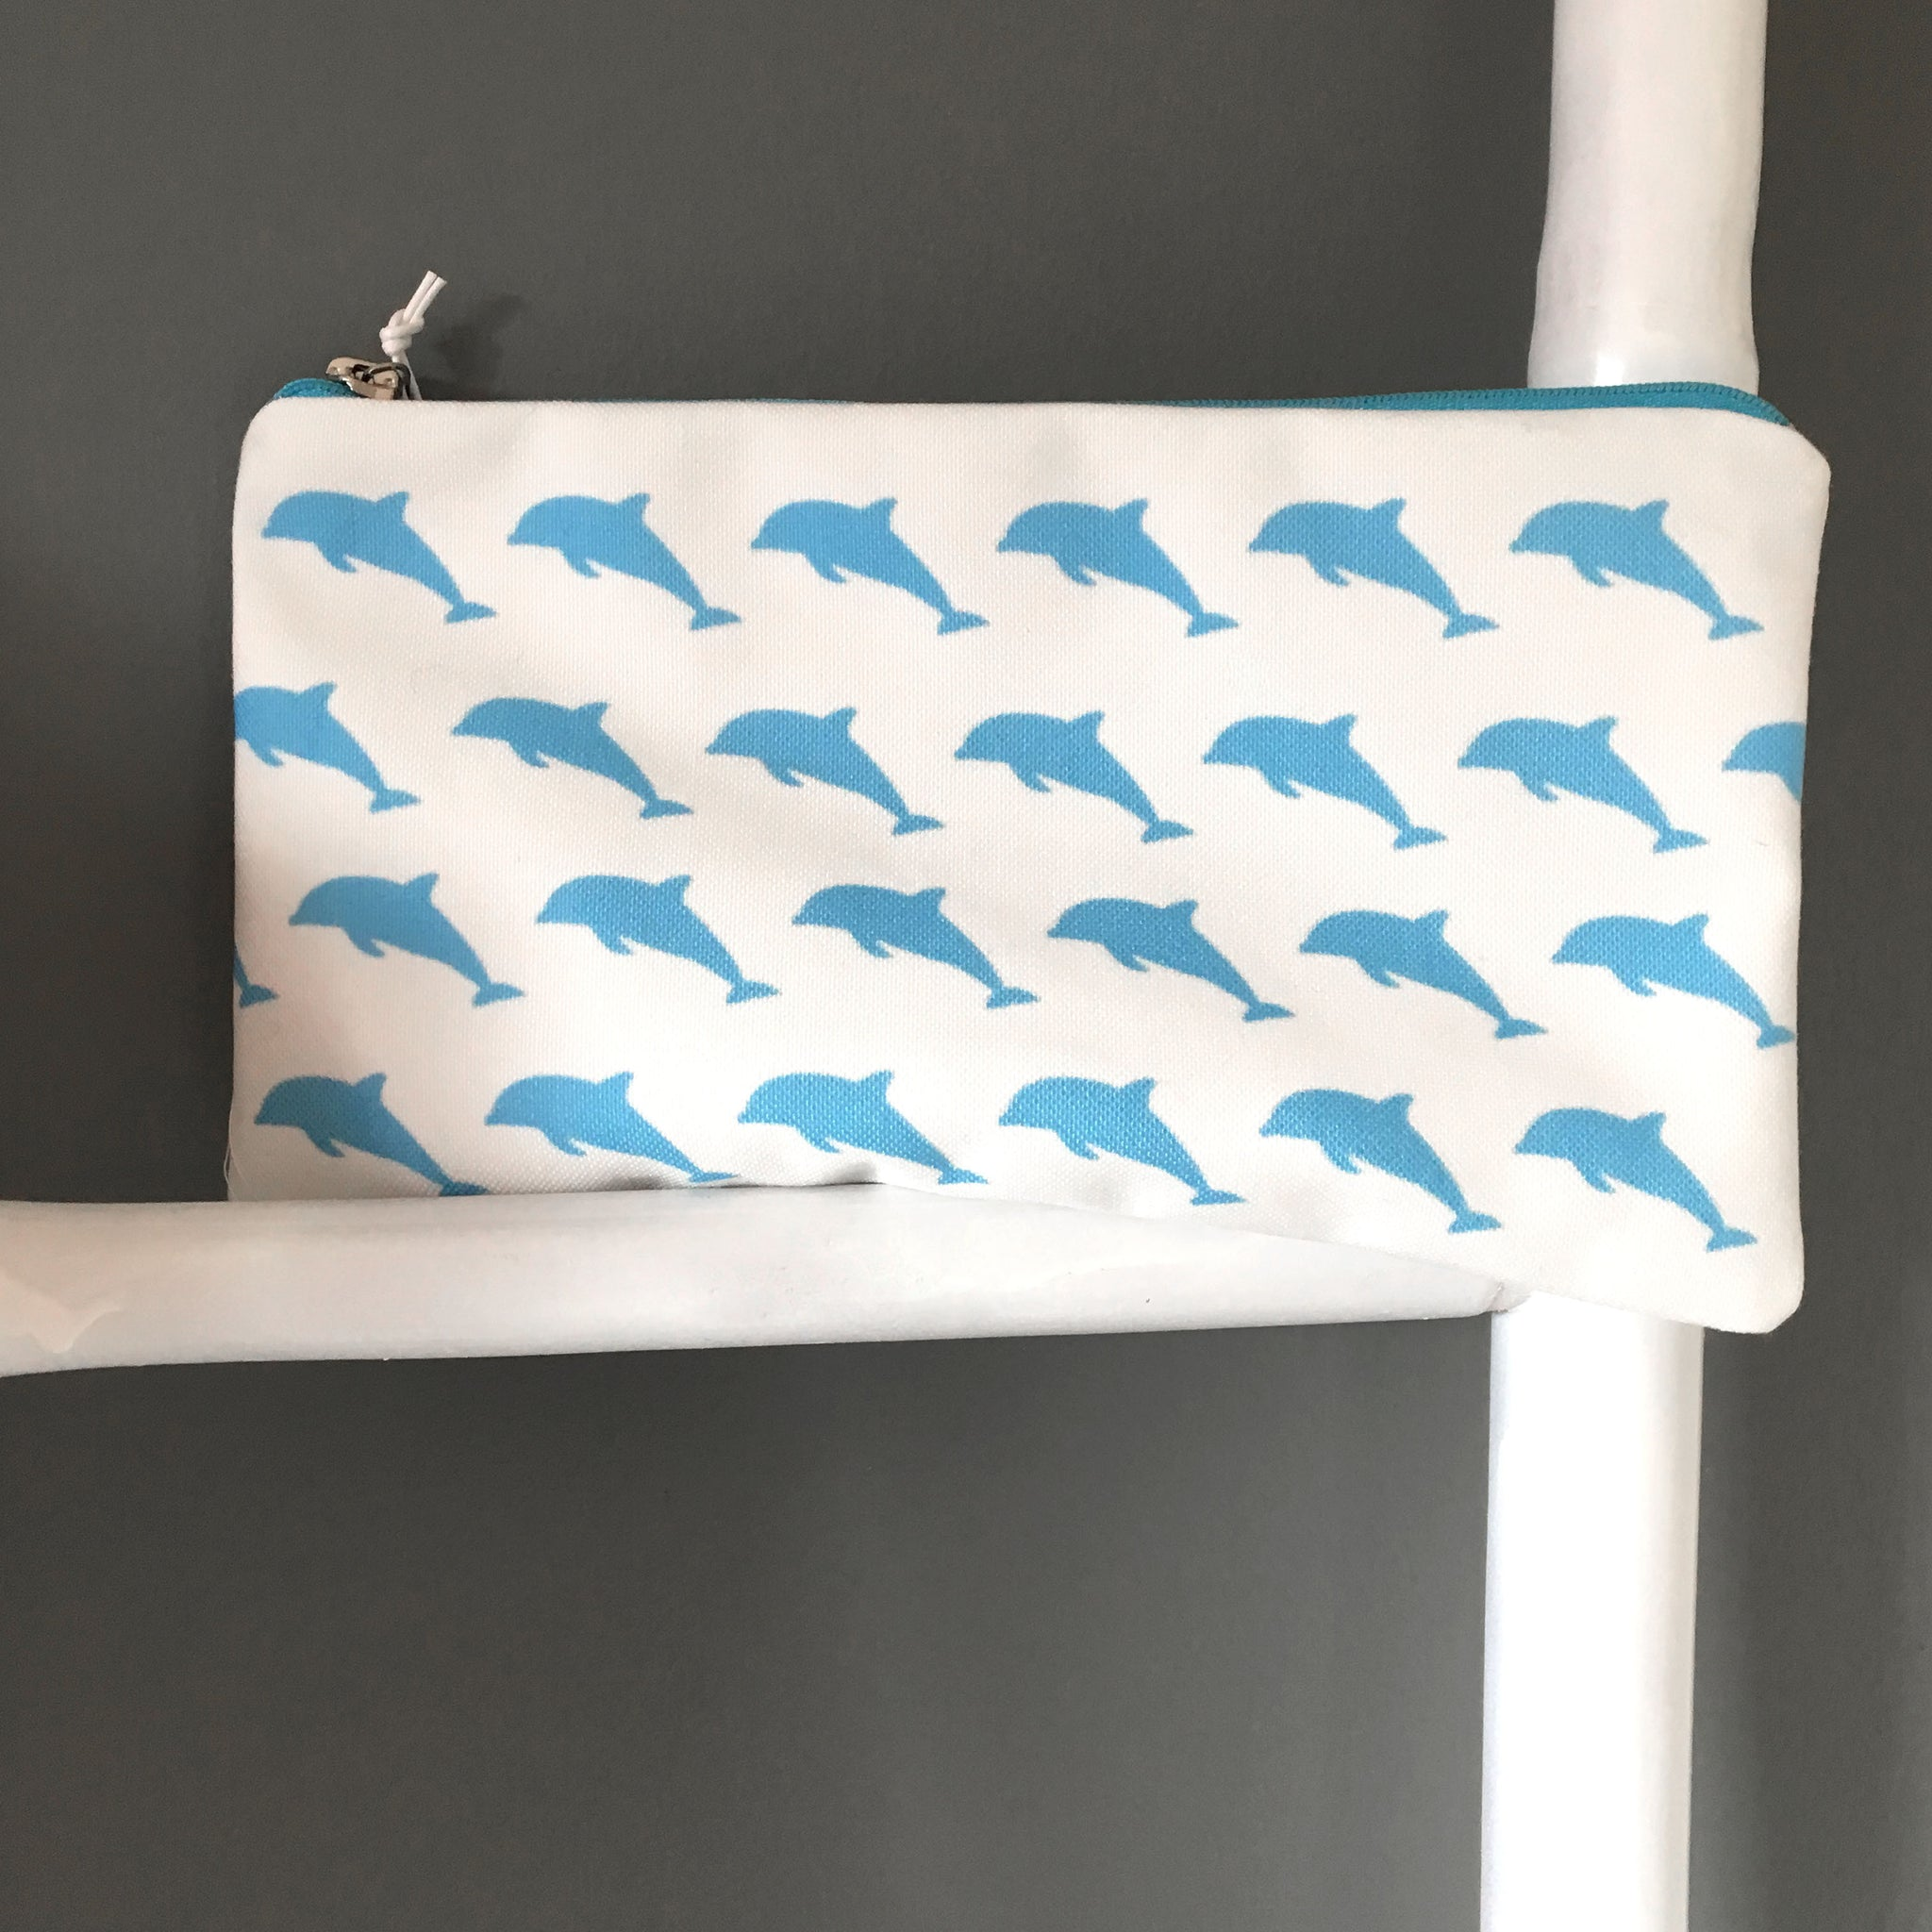 The Dolphins cosmetic bag